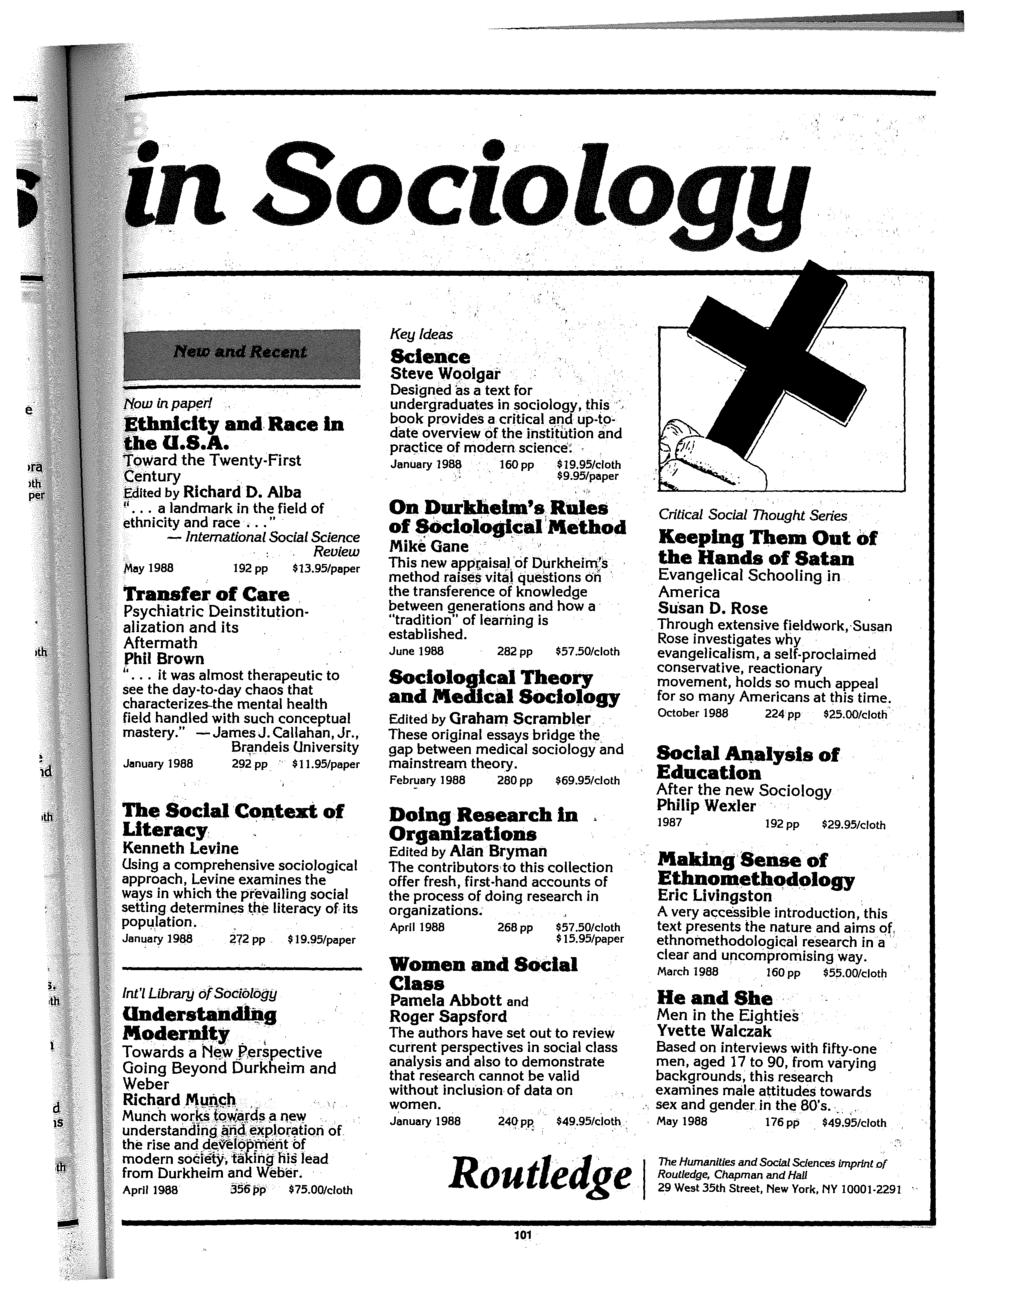 Sociology {'(ow in papf!r/ Ethnlcity and Race In the U.S.A. Toward the Twenty-First Century Edited by Richard D. Alba r' a landmark in the field of ethnicity and race.